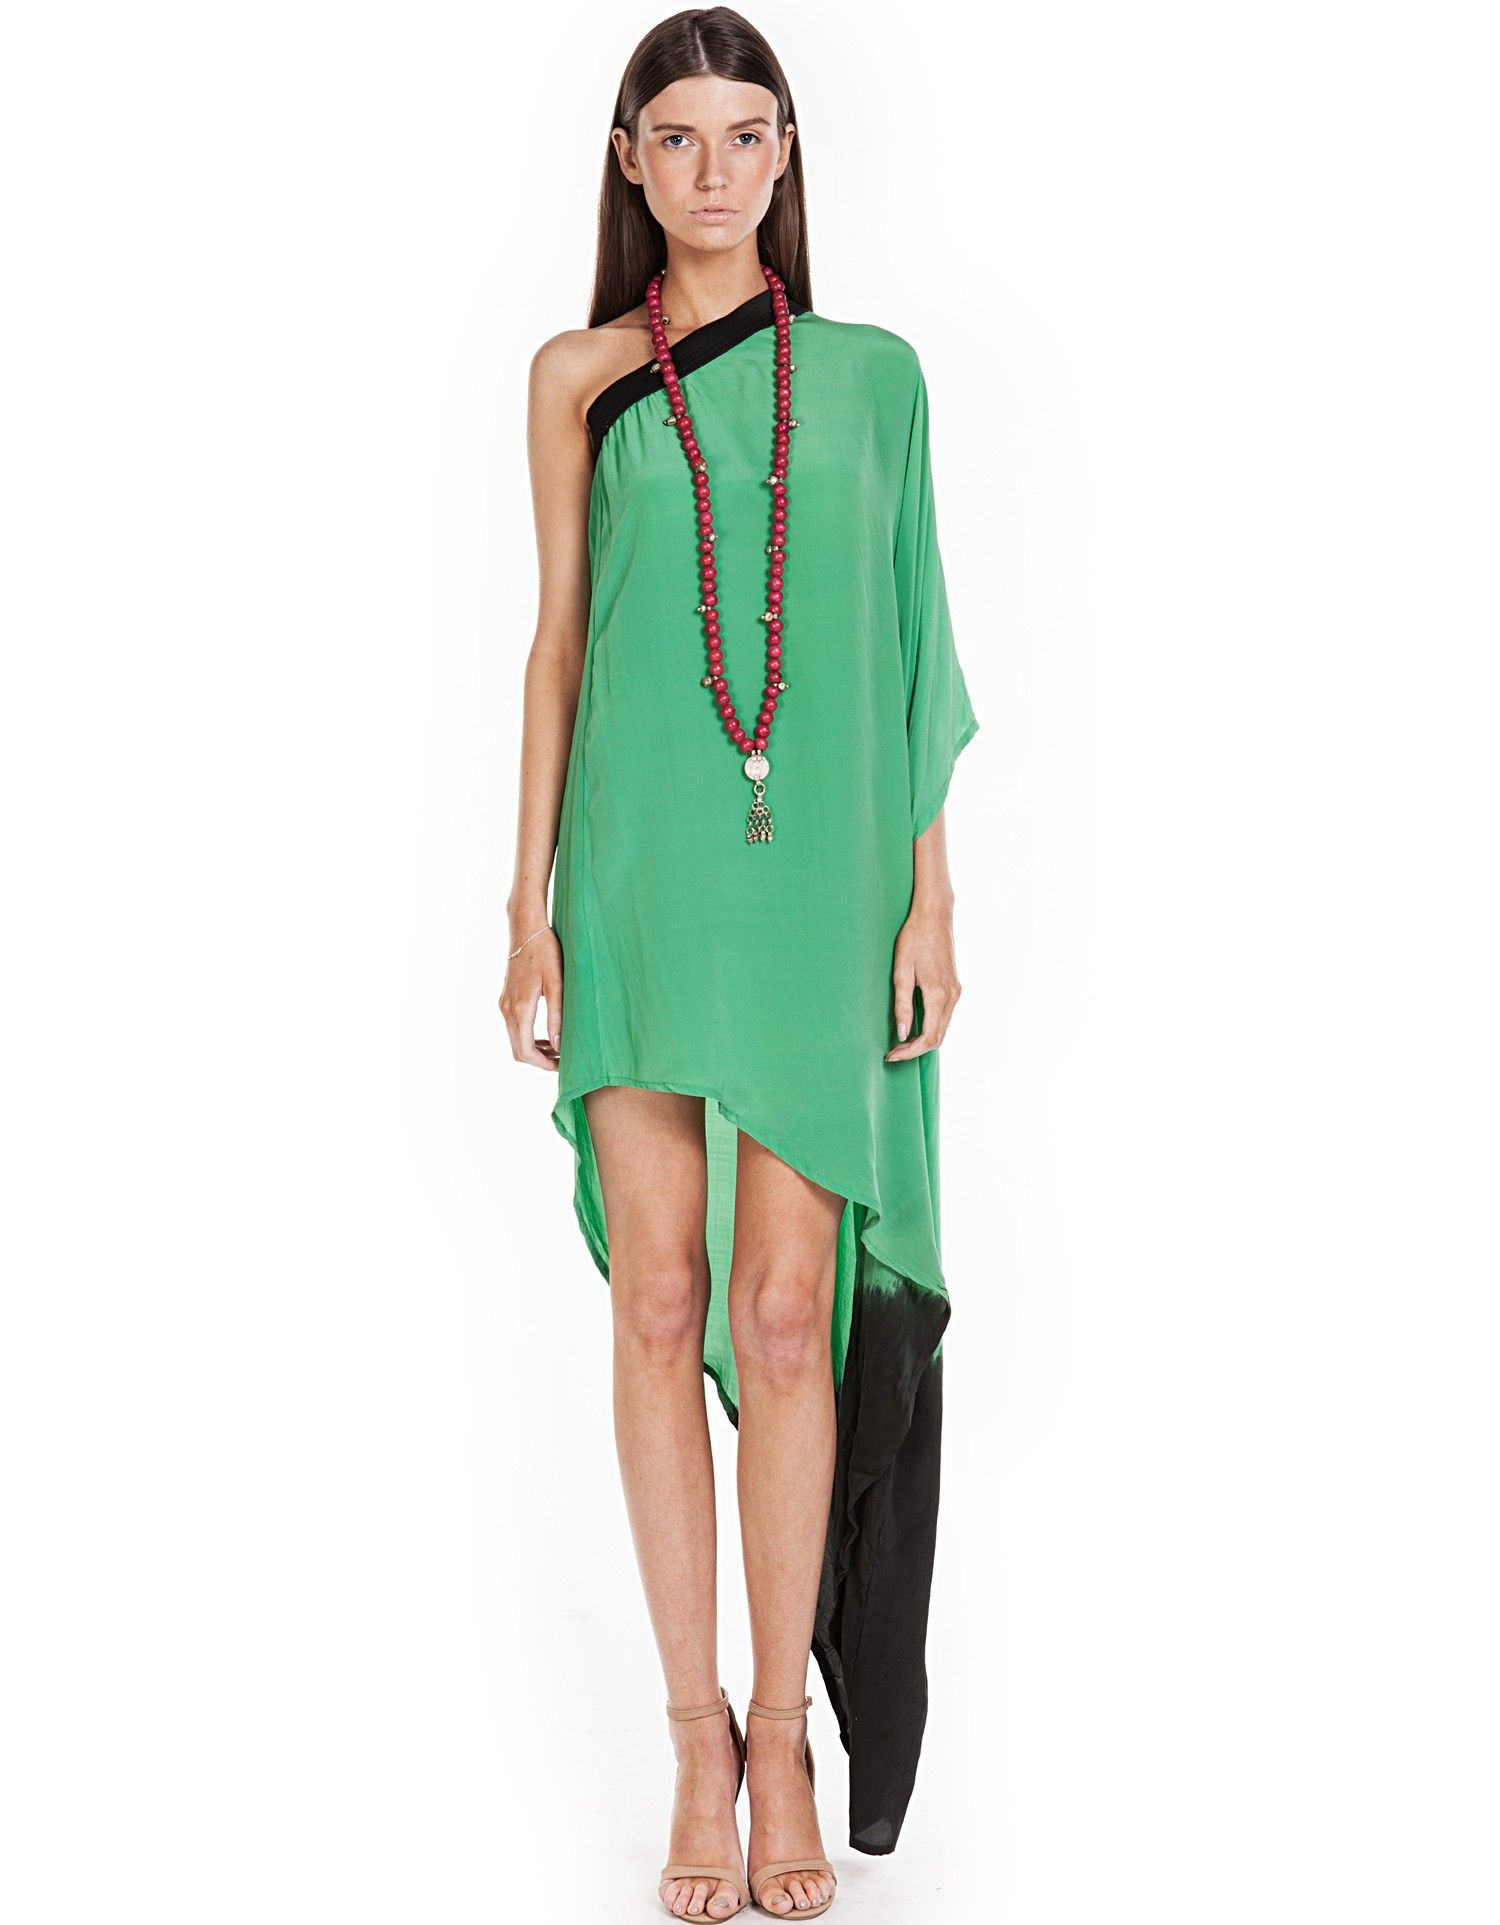 8195970d44320 Angel Wings green one shoulder dress available Suede Online